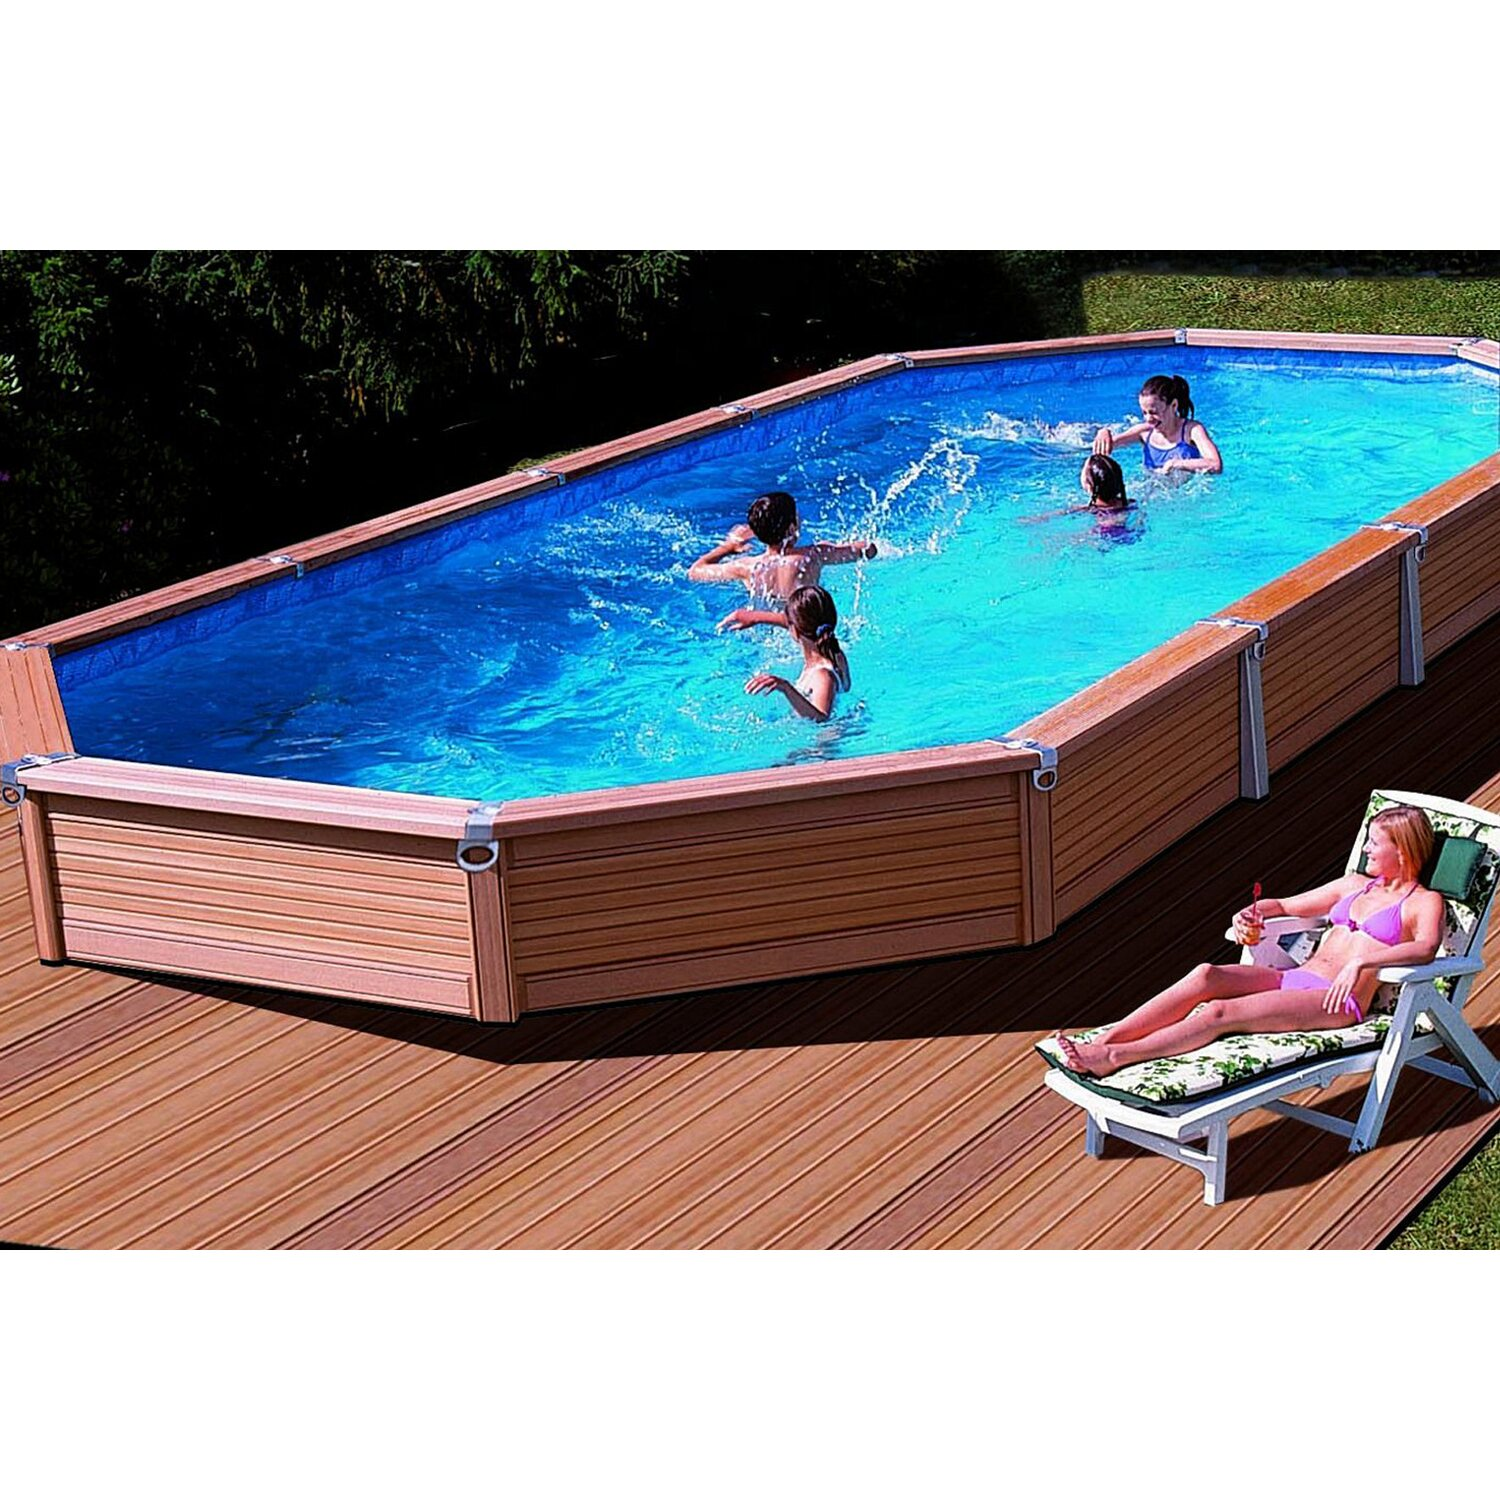 summer fun pool set azteck einbaubecken ovalform 560 cm x